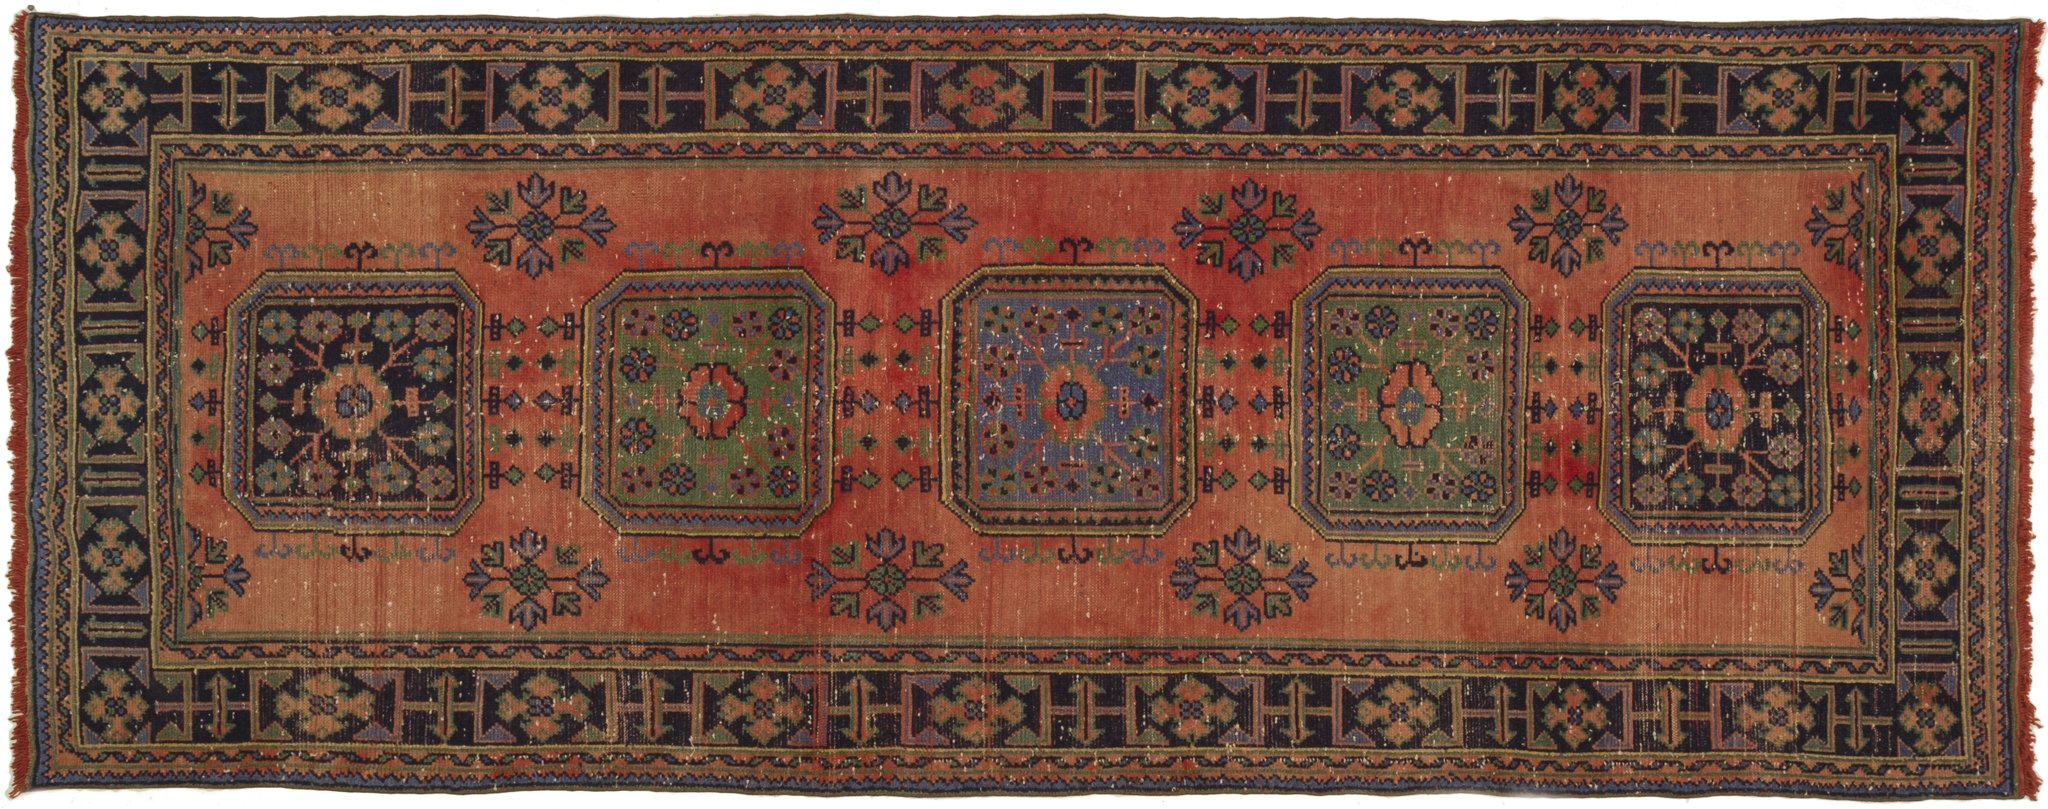 Vintage Turkish Runner Rug Bohumir